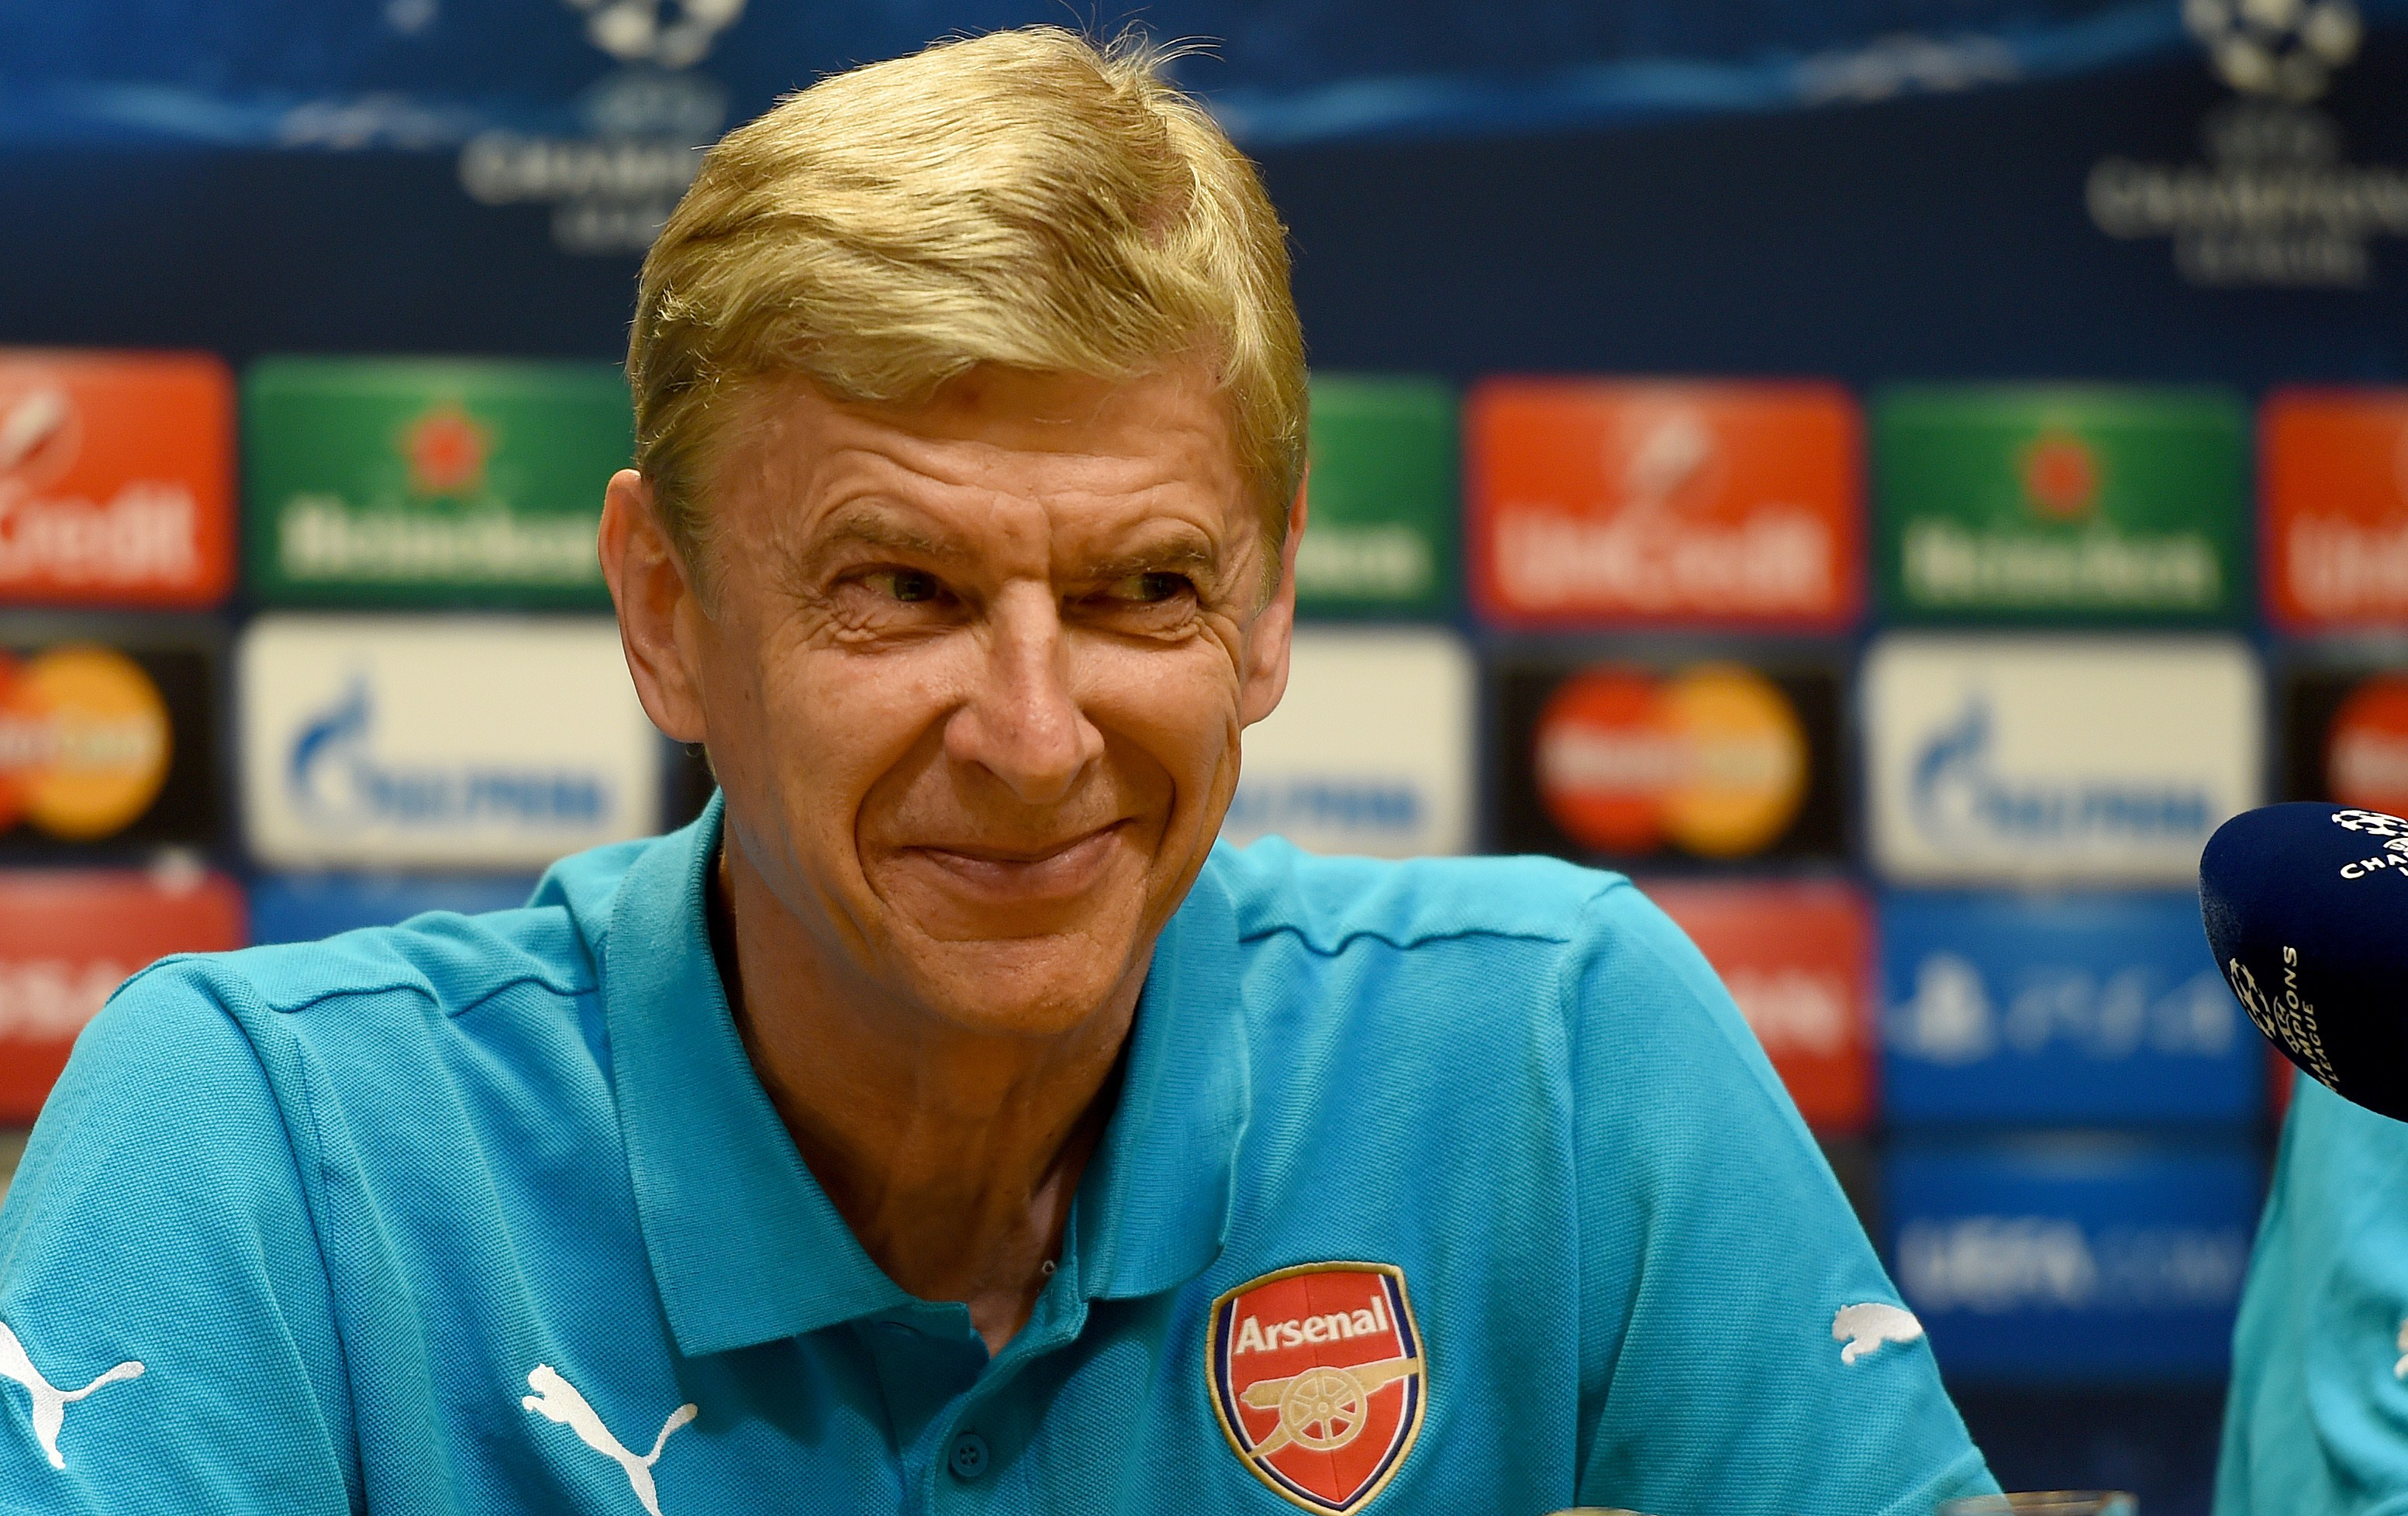 Tony Pulis: Arsenal have a better squad than Chelsea